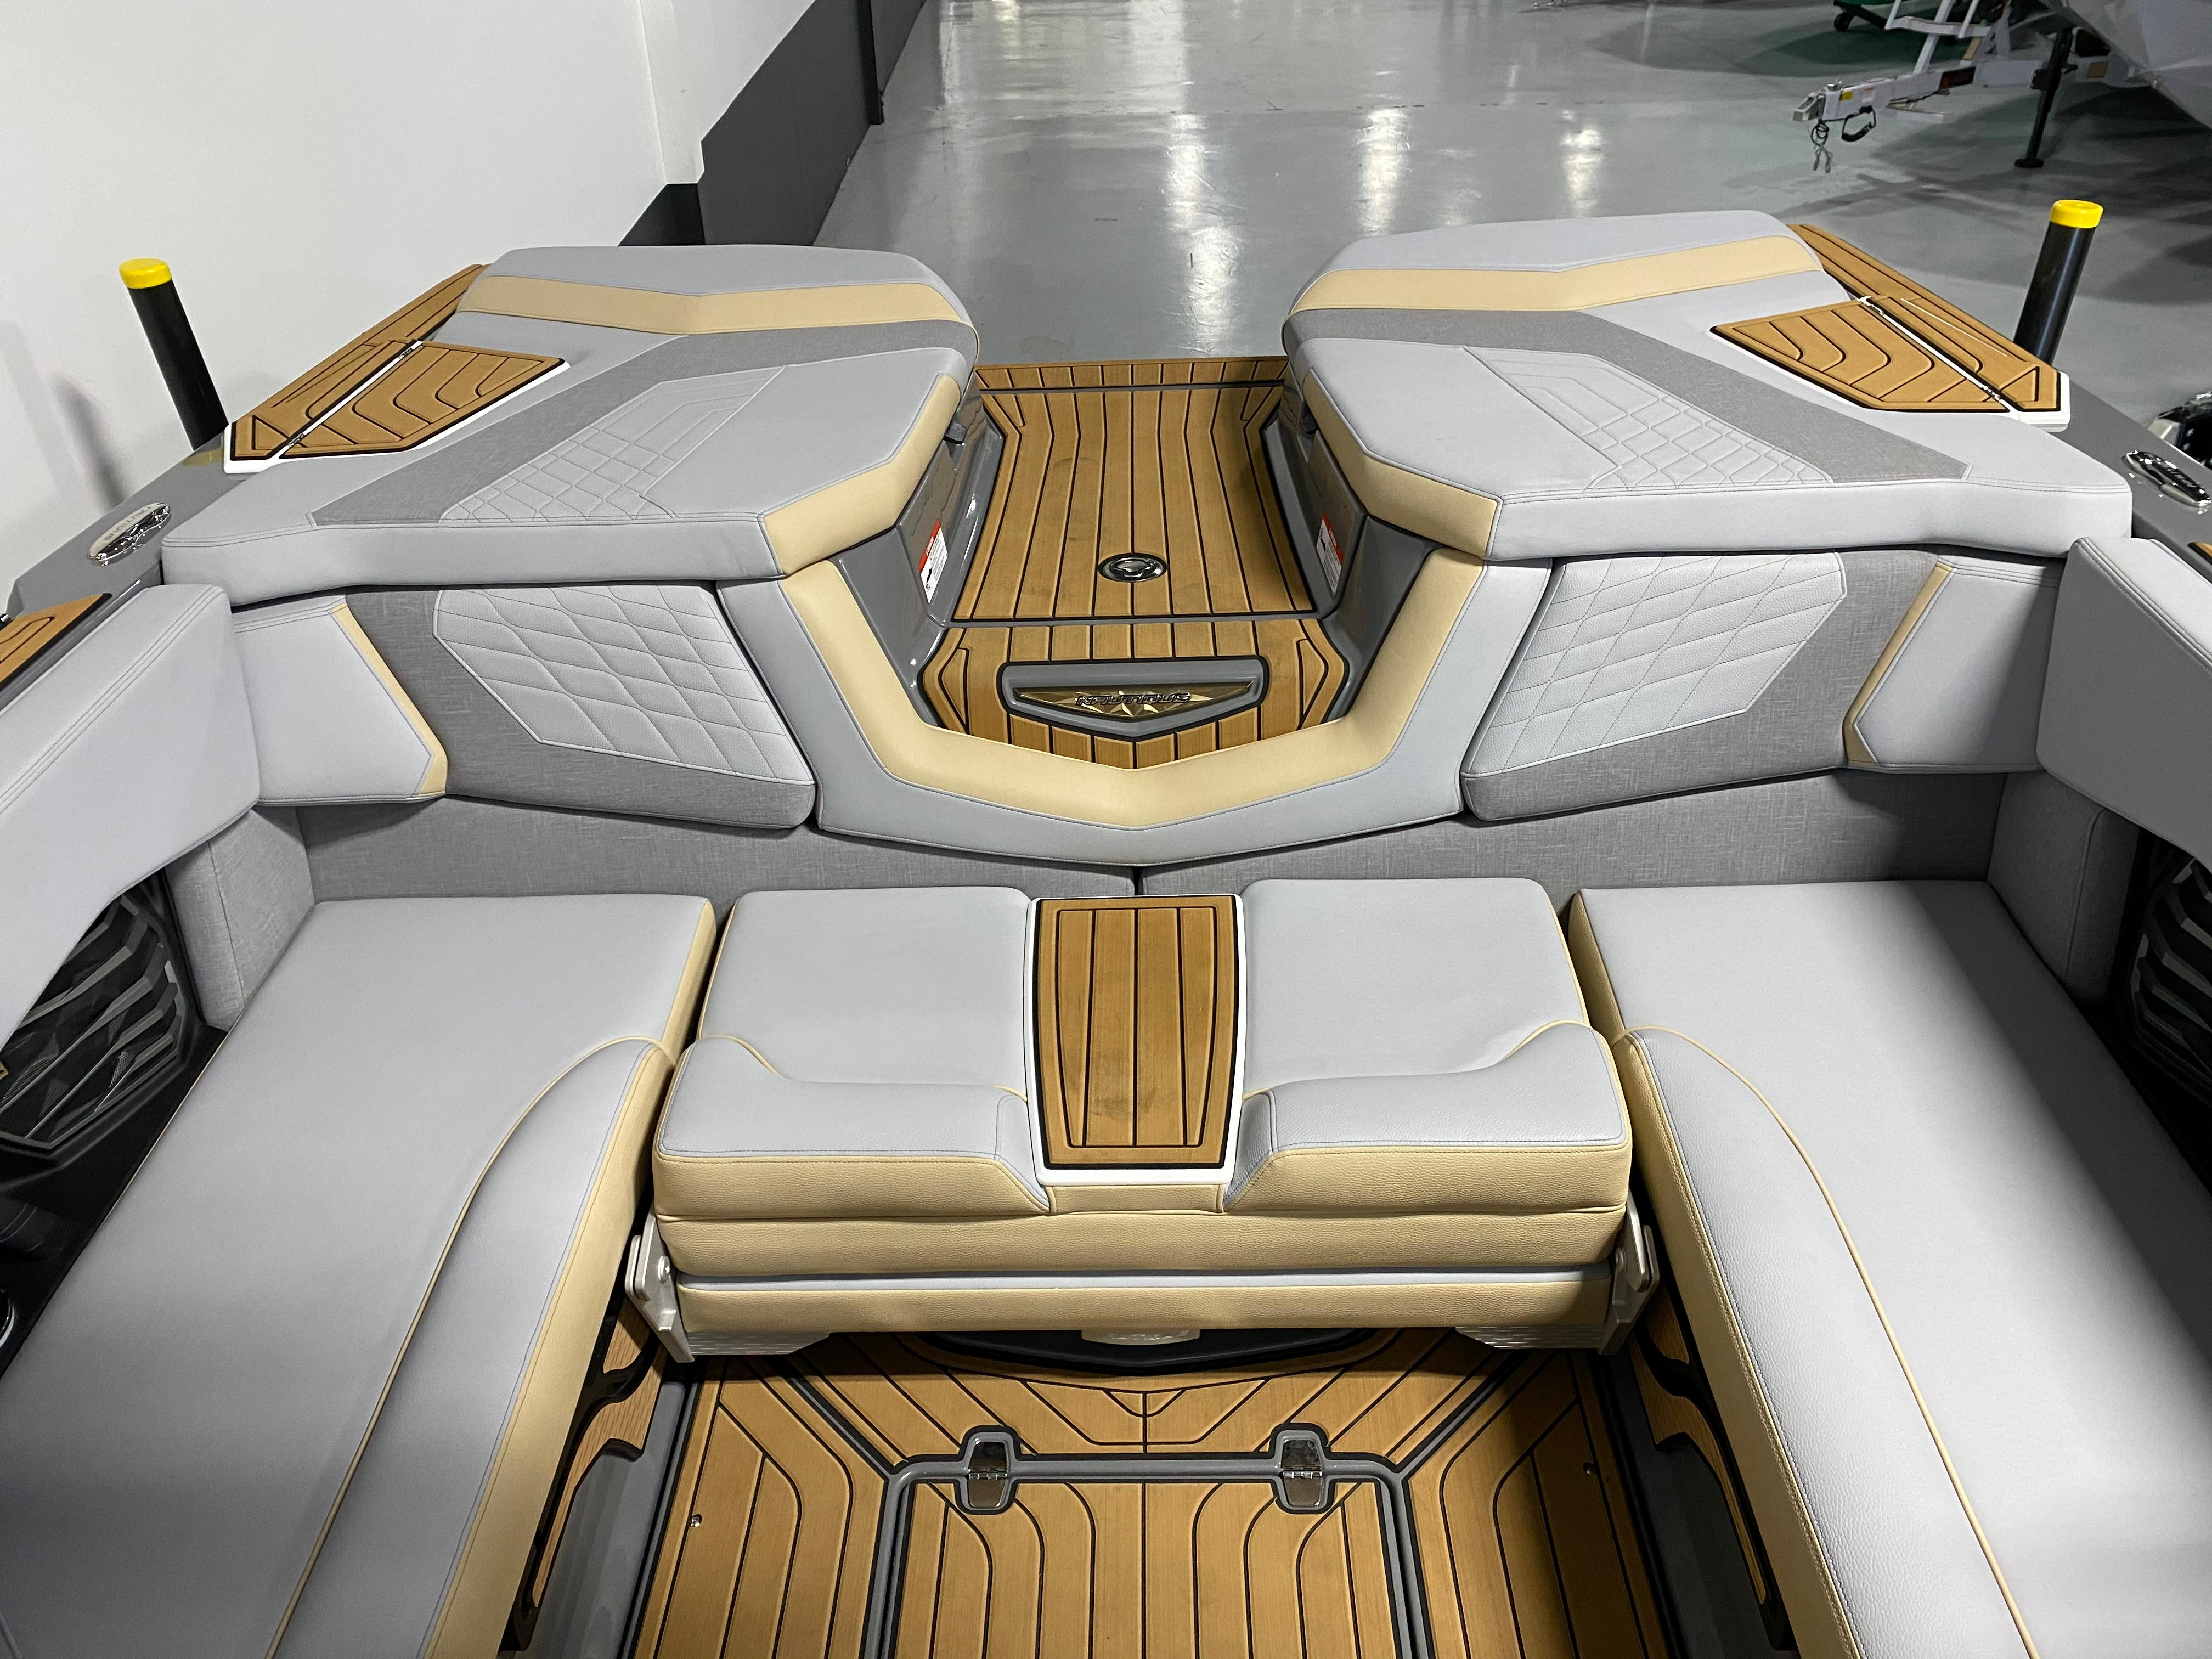 2021 Nautique G25 #N5064J inventory image at Sun Country Inland in Lake Havasu City